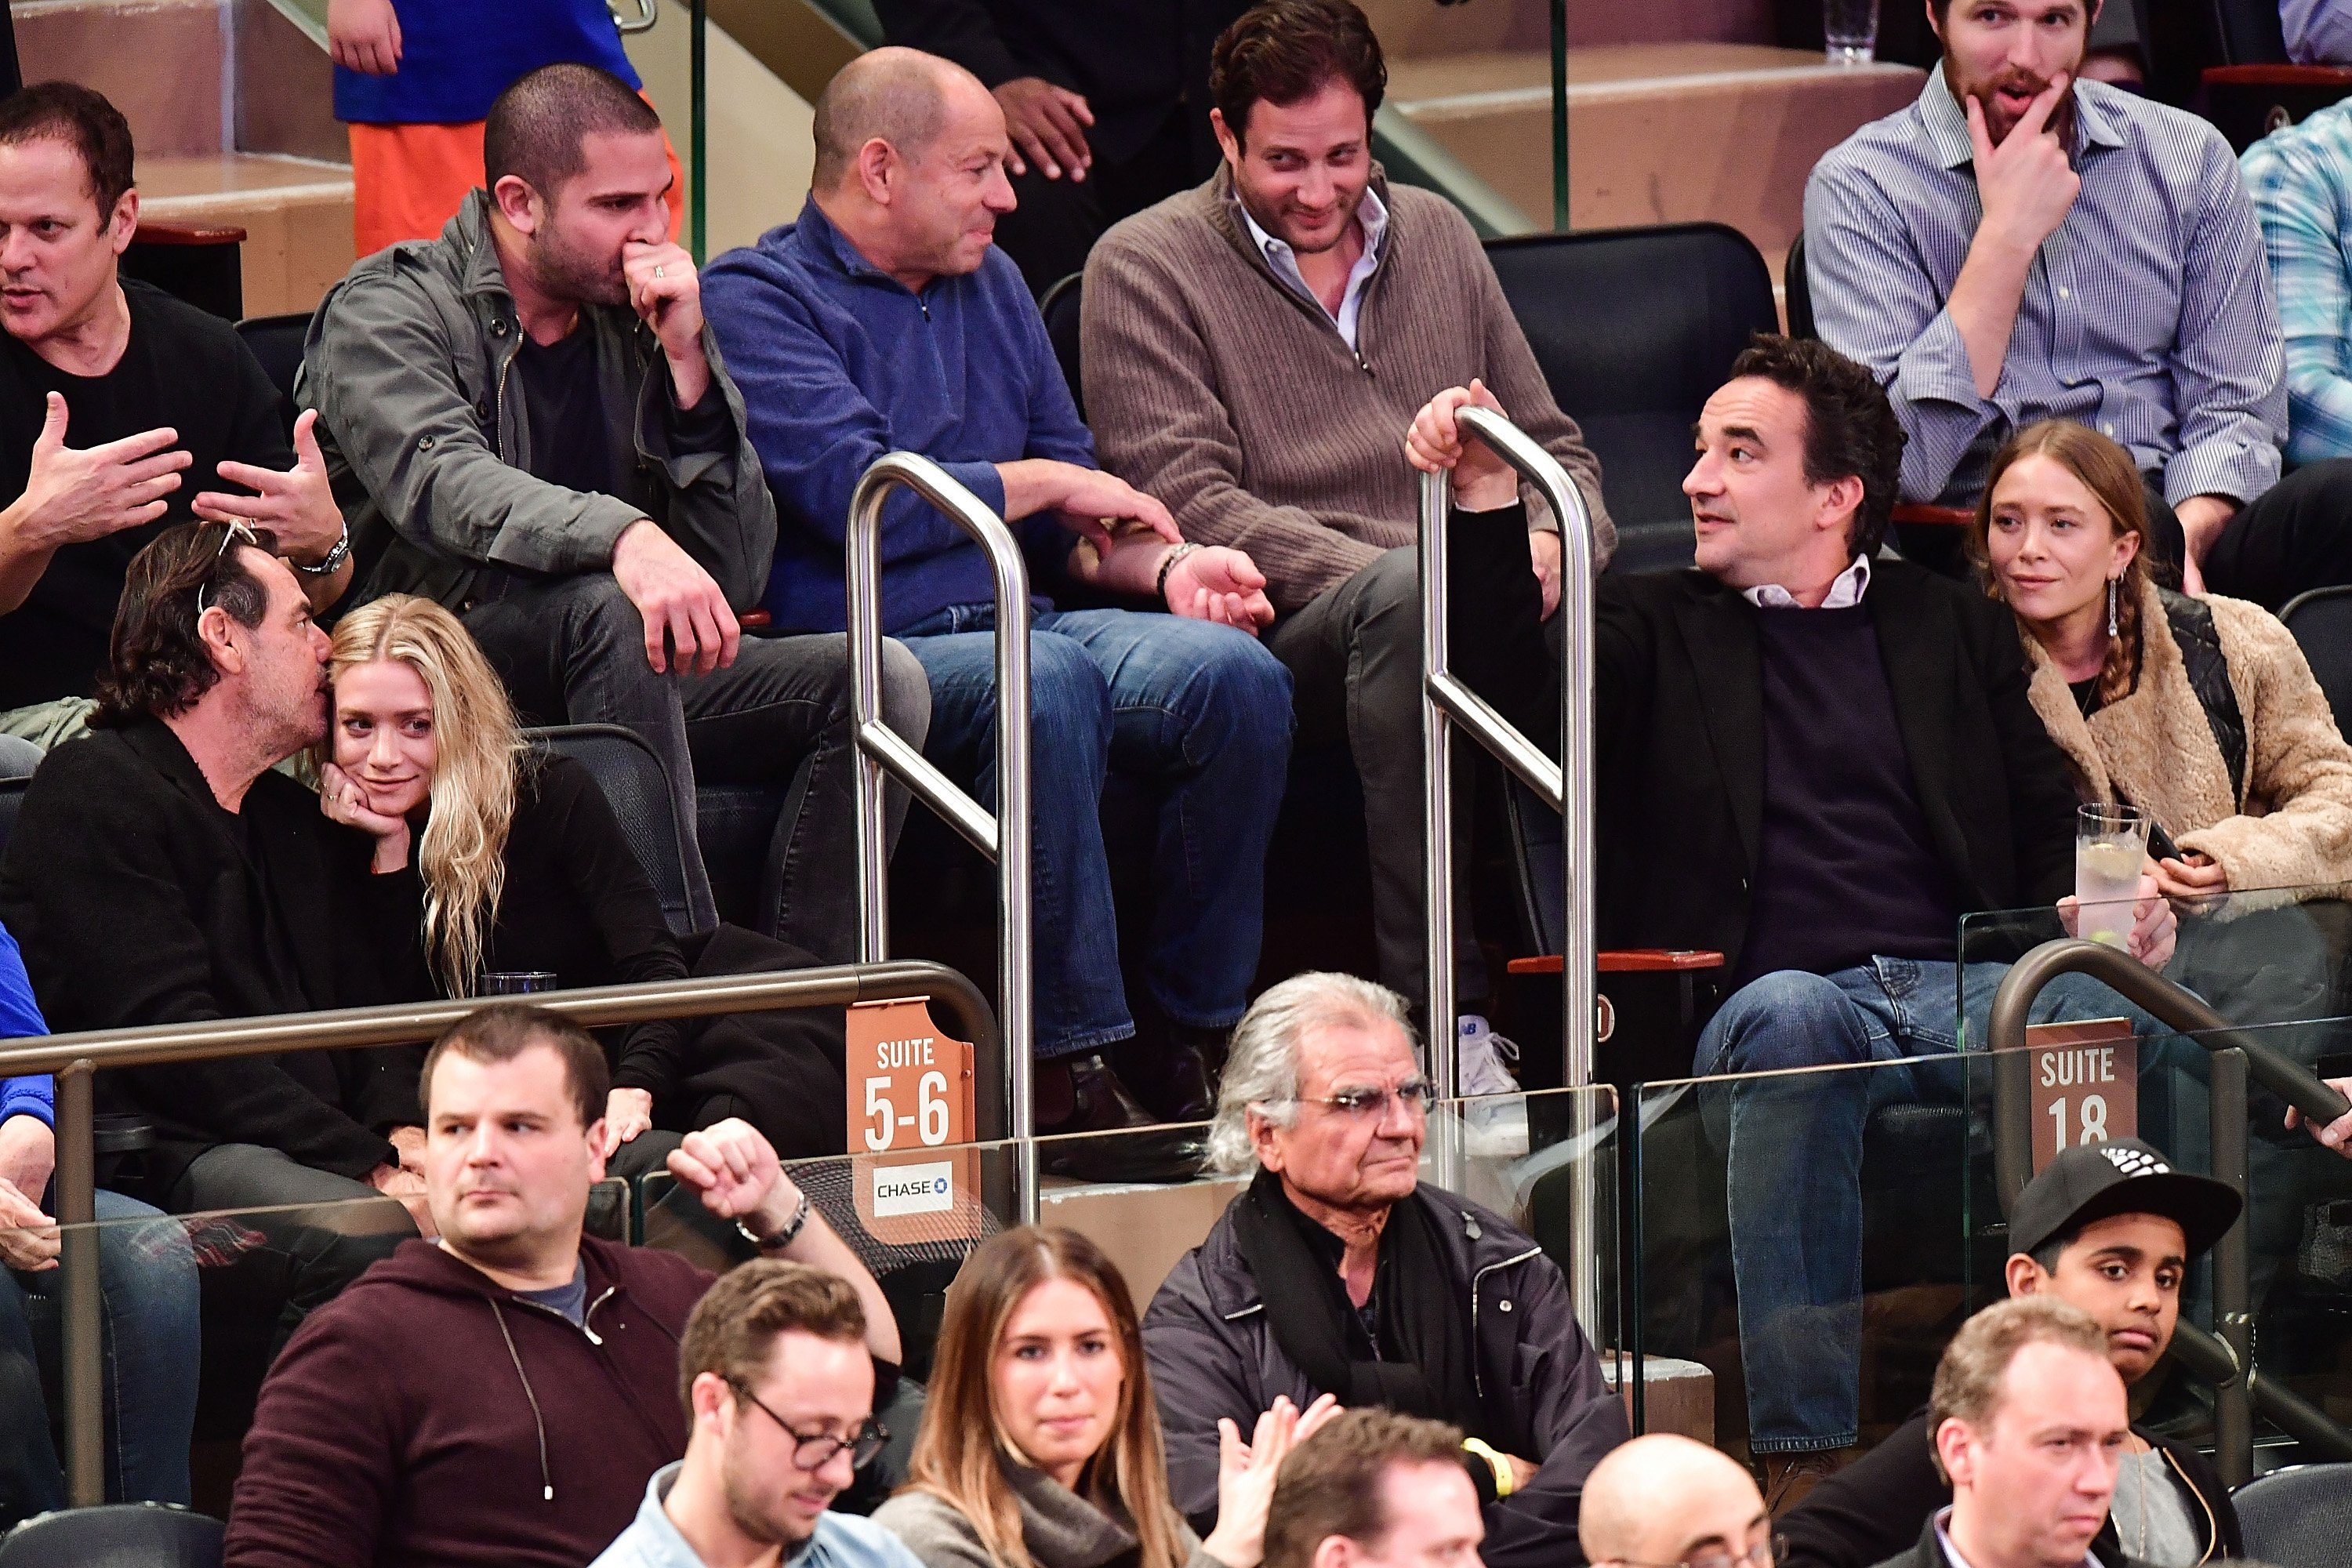 Richard Sachs, Ashley Olsen, Olivier Sarkozy and Mary-Kate Olsen attend New York Knicks vs Brooklyn Nets game at Madison Square Garden on November 9, 2016 in New York City